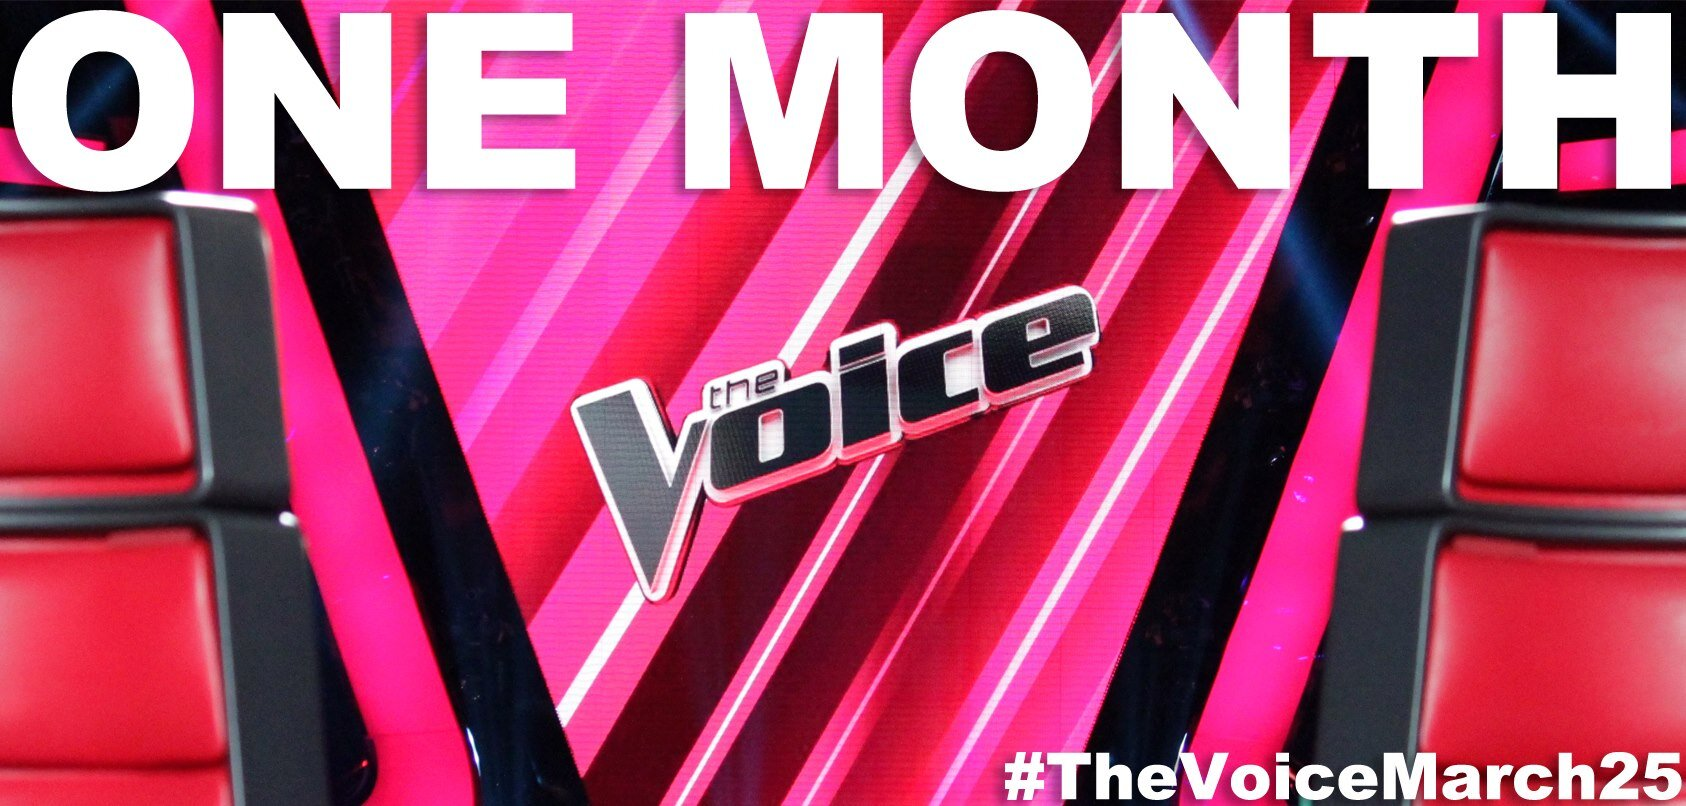 The Voice's Twitter Photo